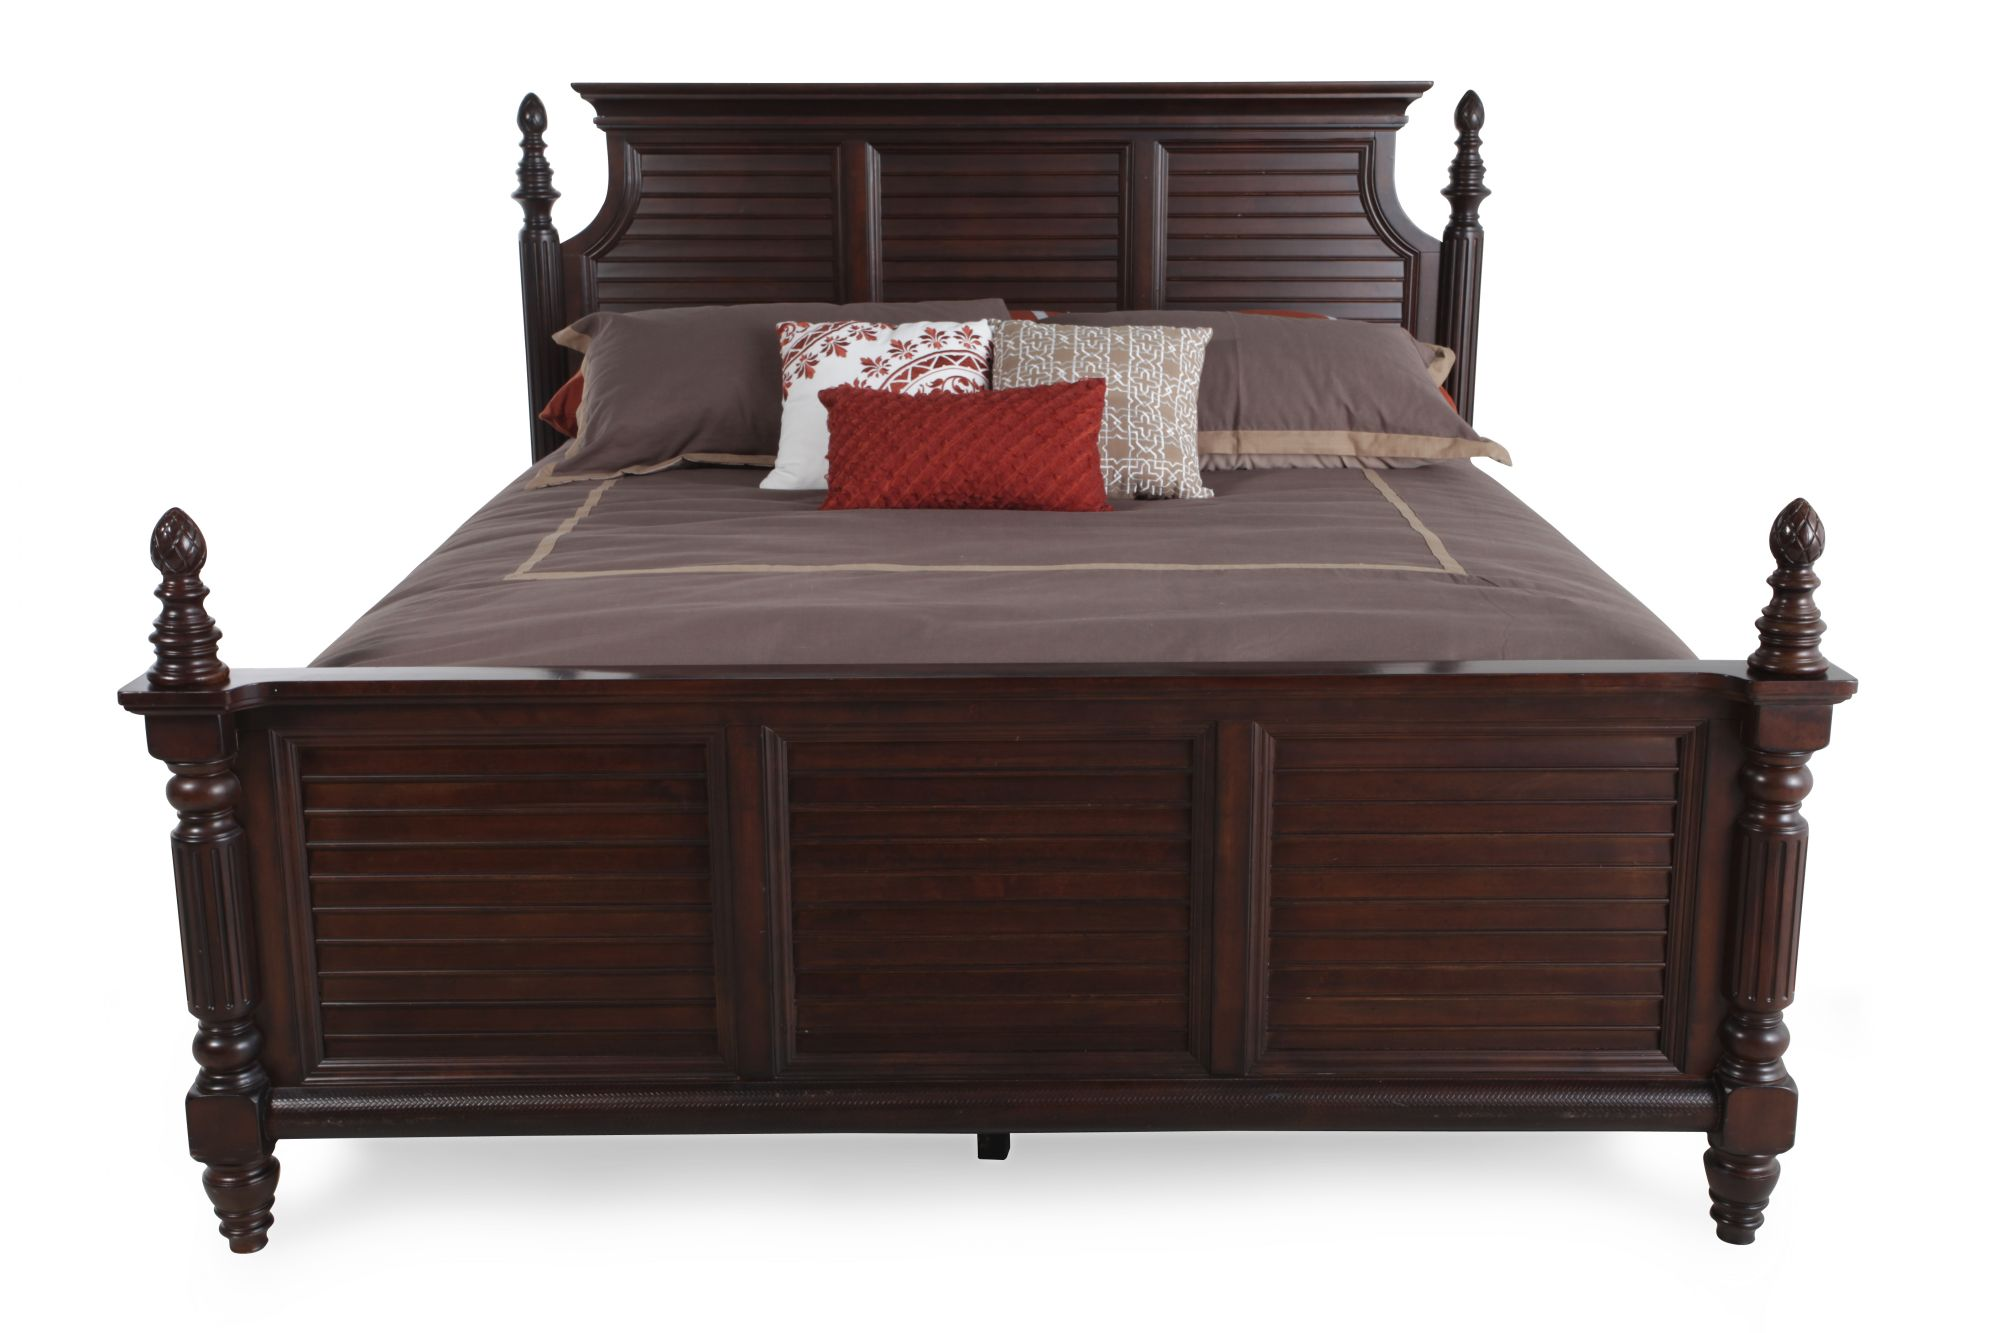 Ashley key town california king panel bed mathis brothers furniture for Ashley furniture key town bedroom set